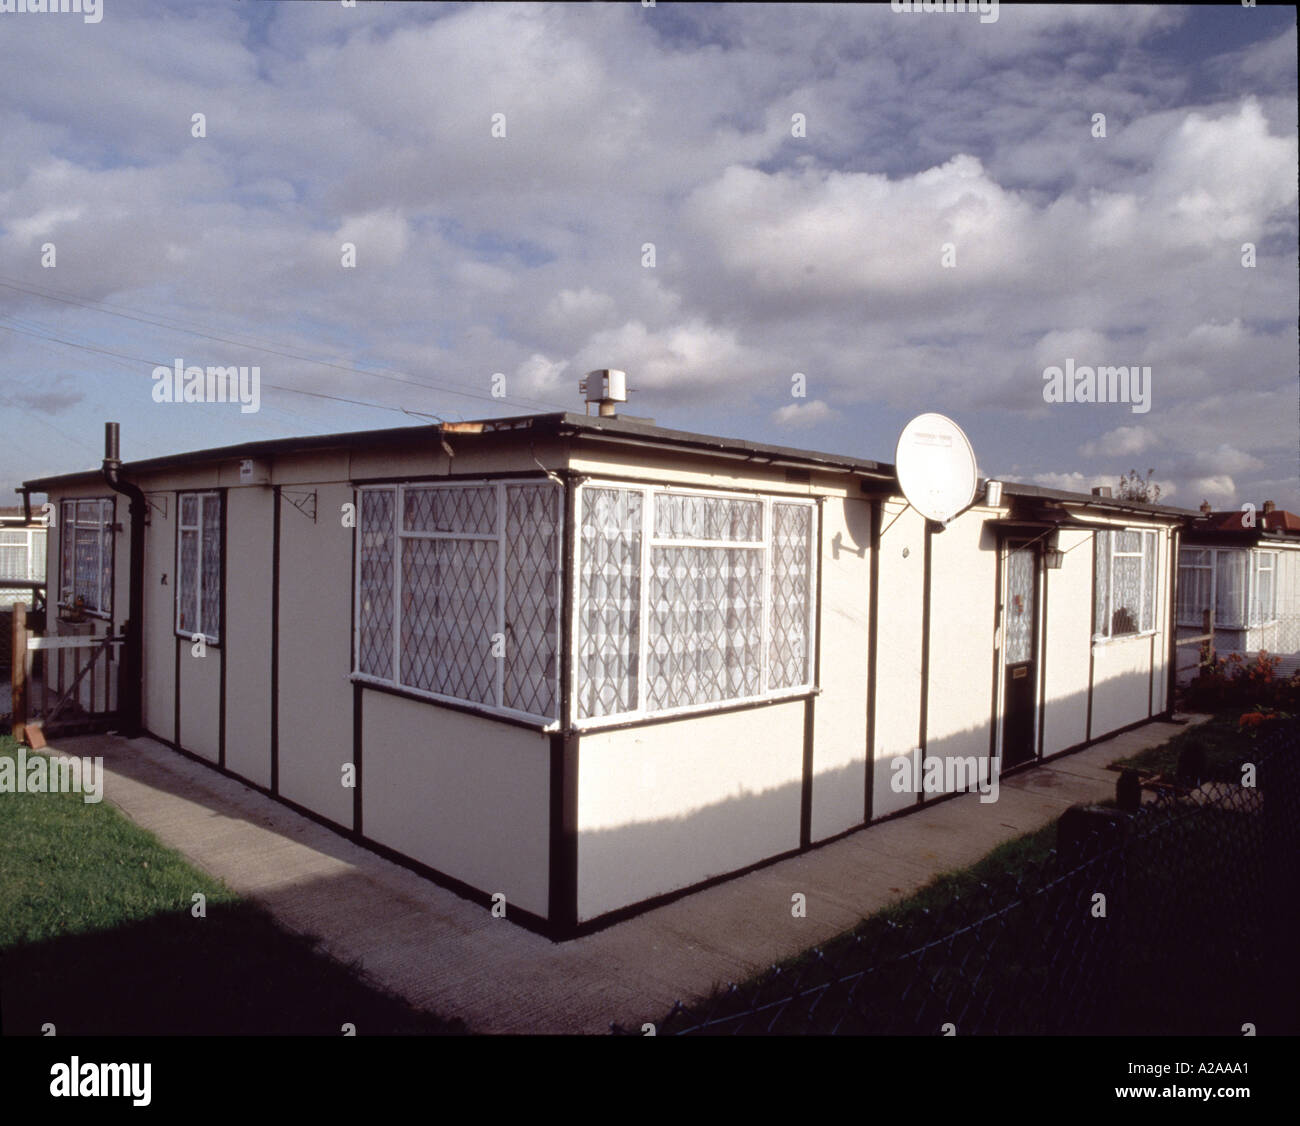 Post War Prefabricated Flat Roof Single Storey Housing